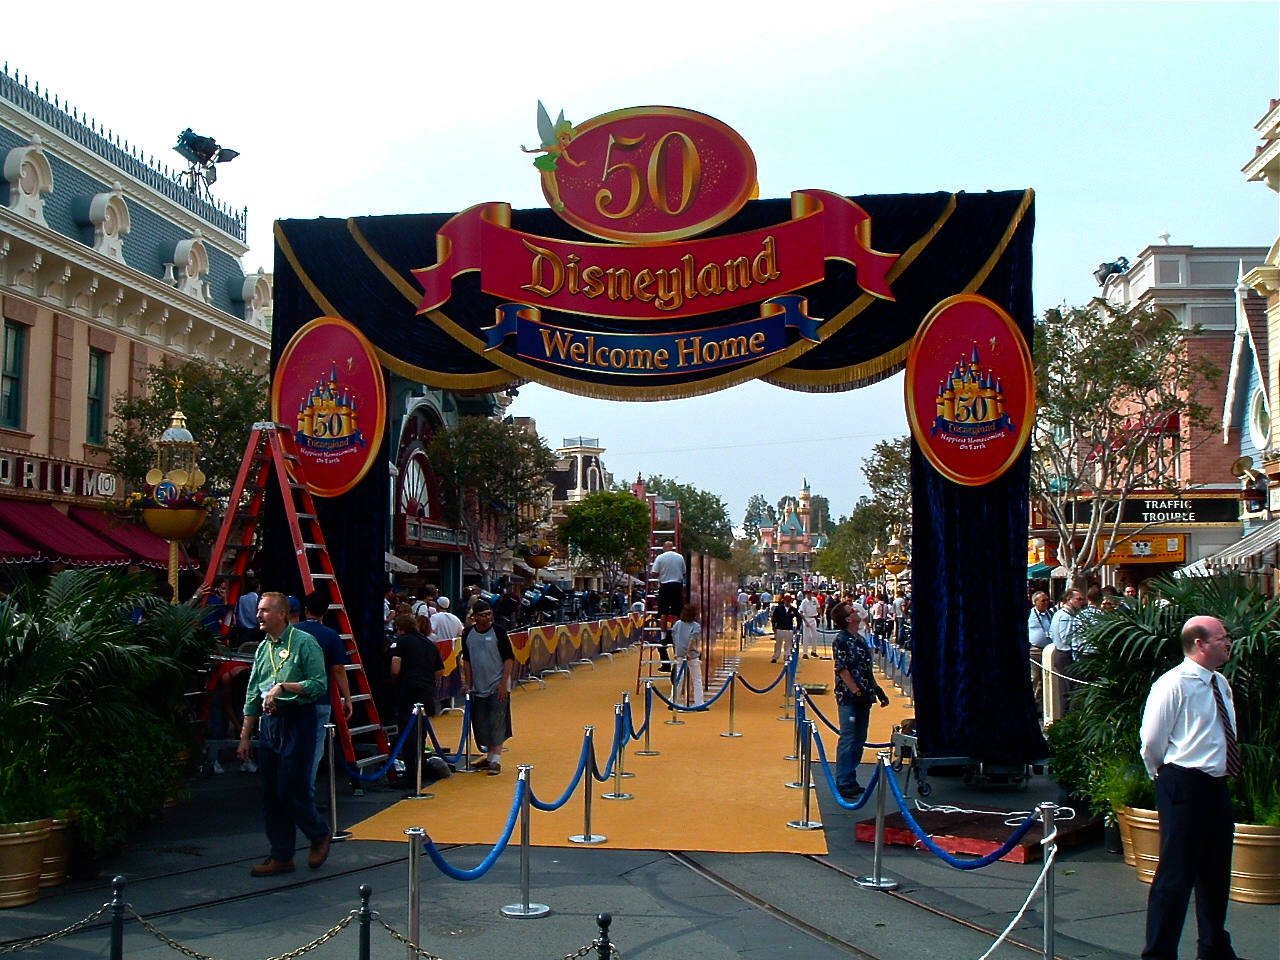 In May of 2005, Disneyland started its celebration for their 50th anniversary.  To start the event, Disneyland had a press day where Disneyland was closed to the public.  Fortunately for […]